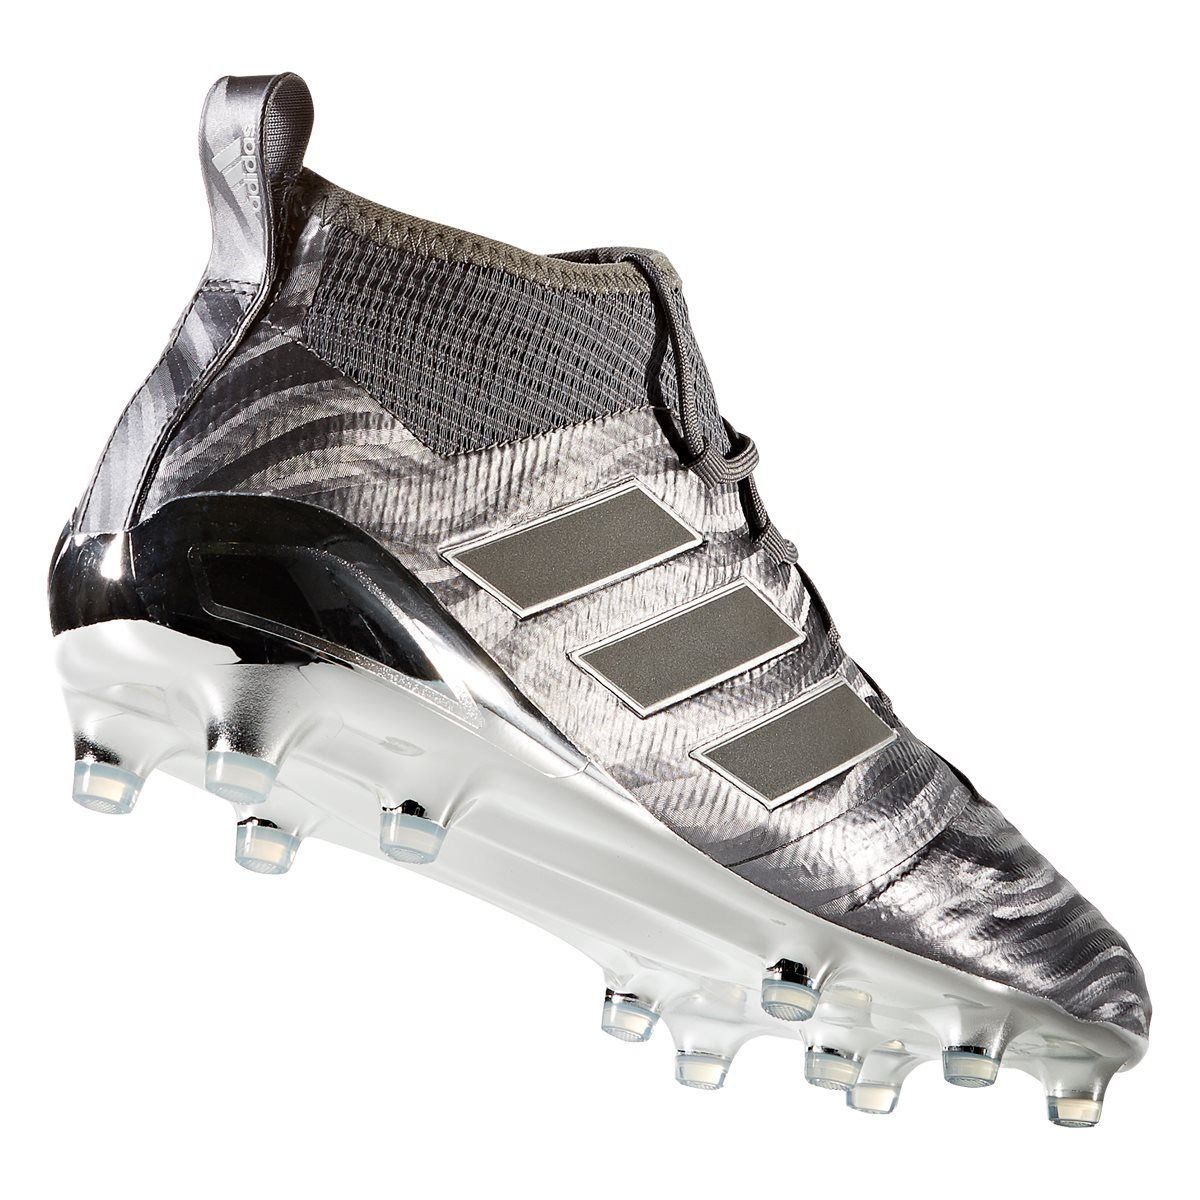 d2b094d67ce White Adidas Ace 17.1 Primeknit Camouflage Pack | Soccer shoes | Adidas  rugby boots, Adidas boots, Soccer boots